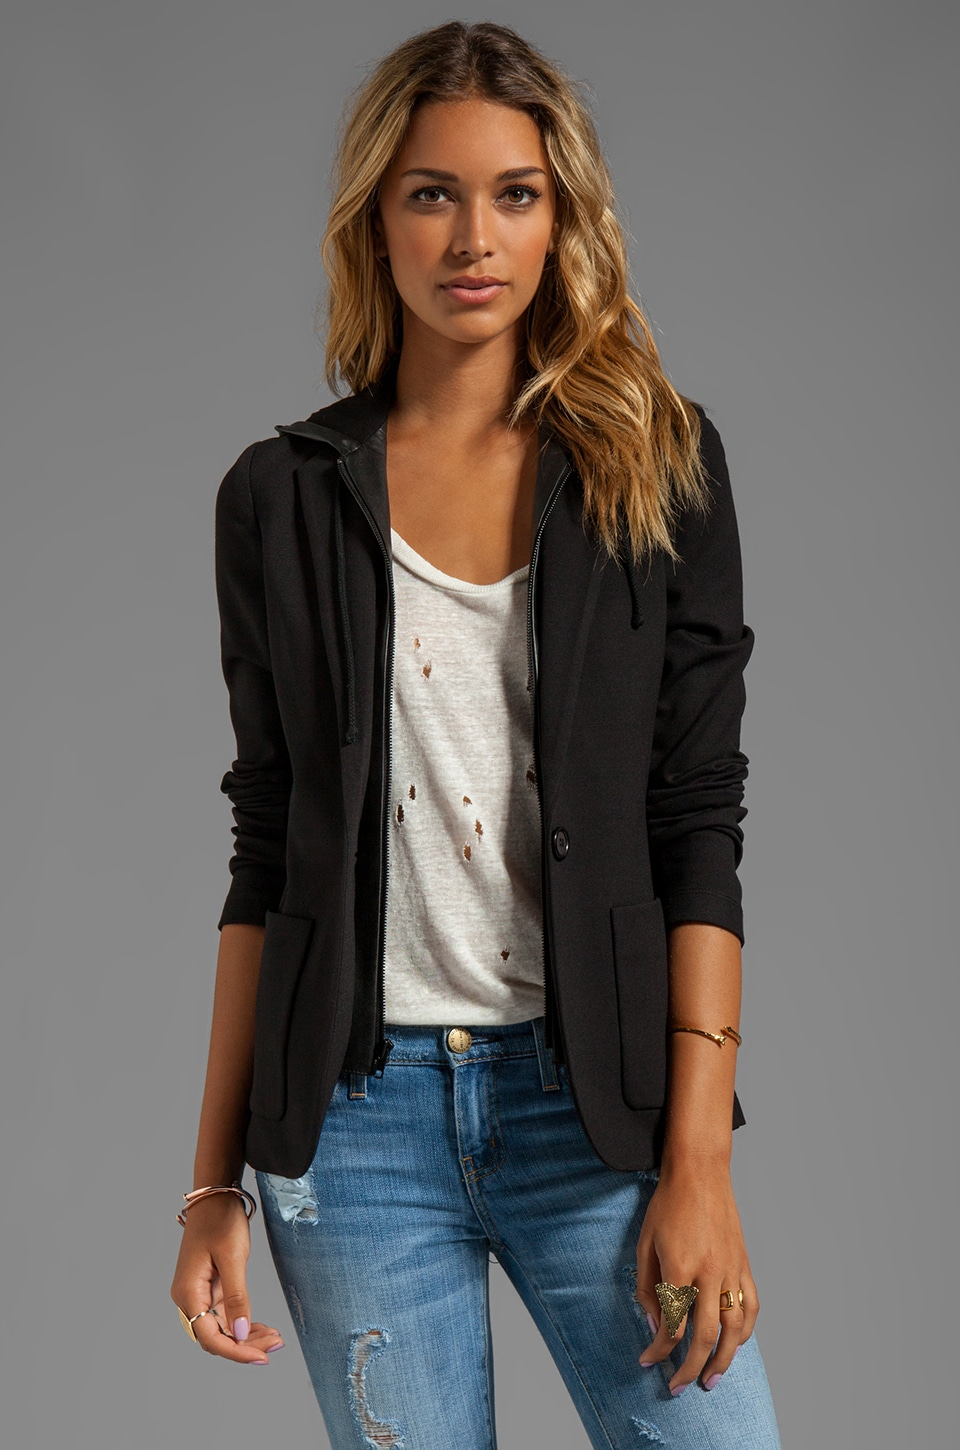 Bailey 44 Haiku Leather Trim Blazer with Hood in Black/Black